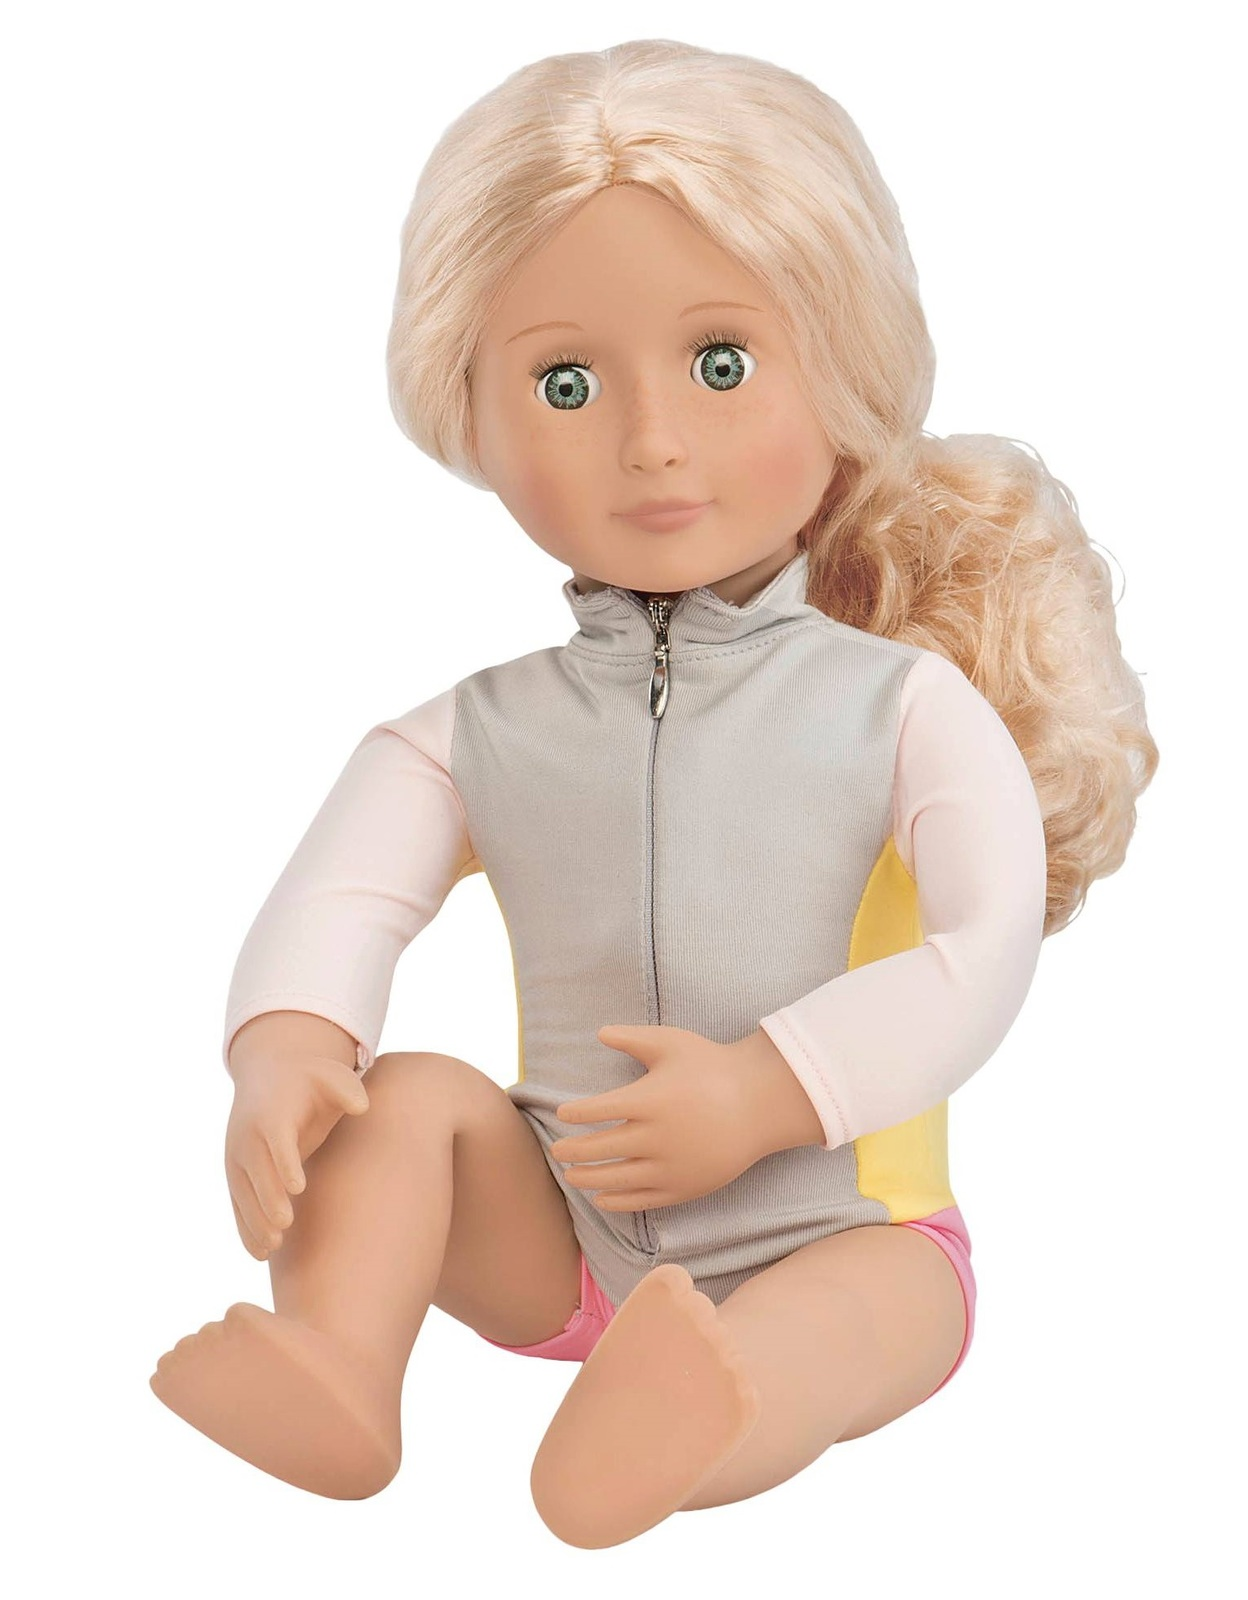 "Our Generation: 18"" Deluxe Doll - Coral Surfer image"